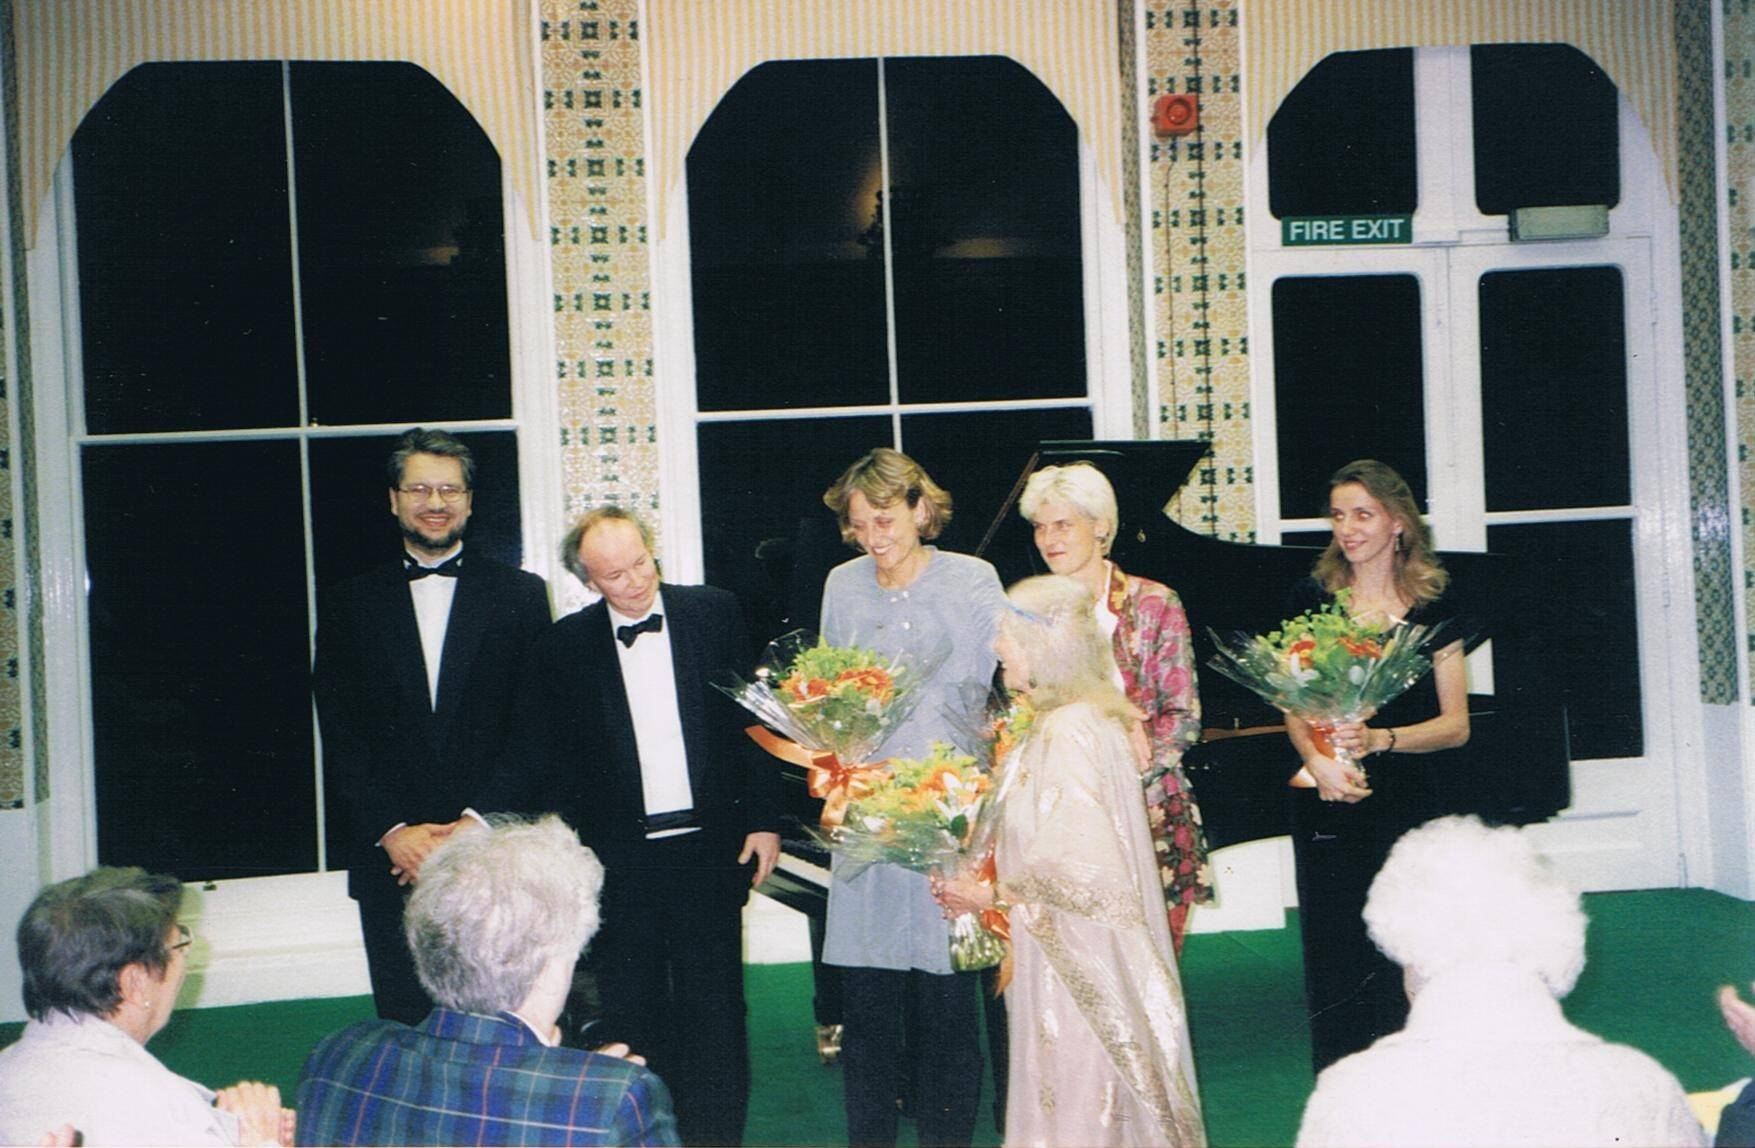 With Yalta Menuhin at Orwell Park School, Suffolk, UK, 1998